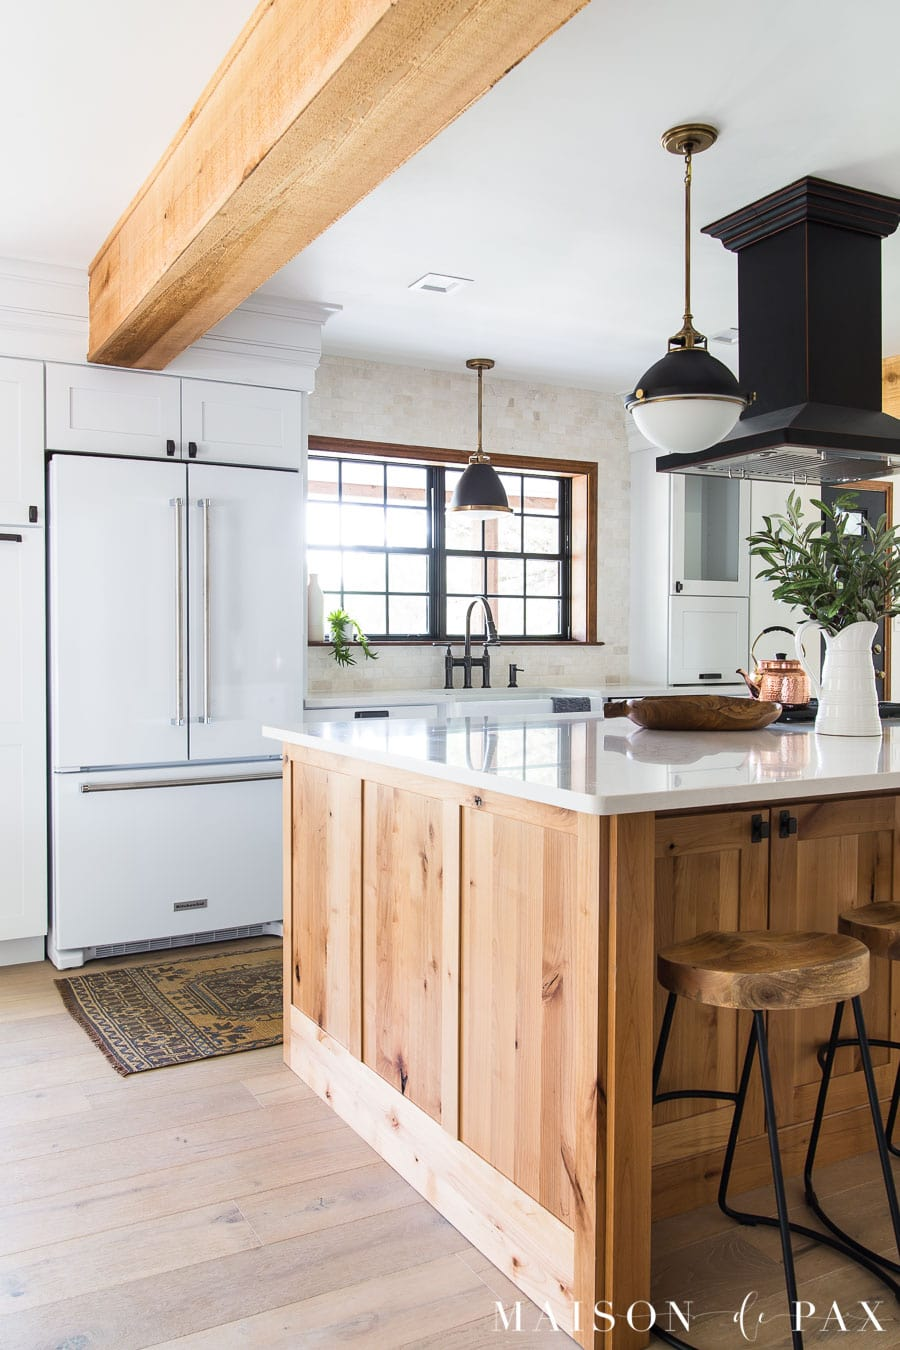 white fridge, rustic beams, wood island in kitchen | Maison de Pax